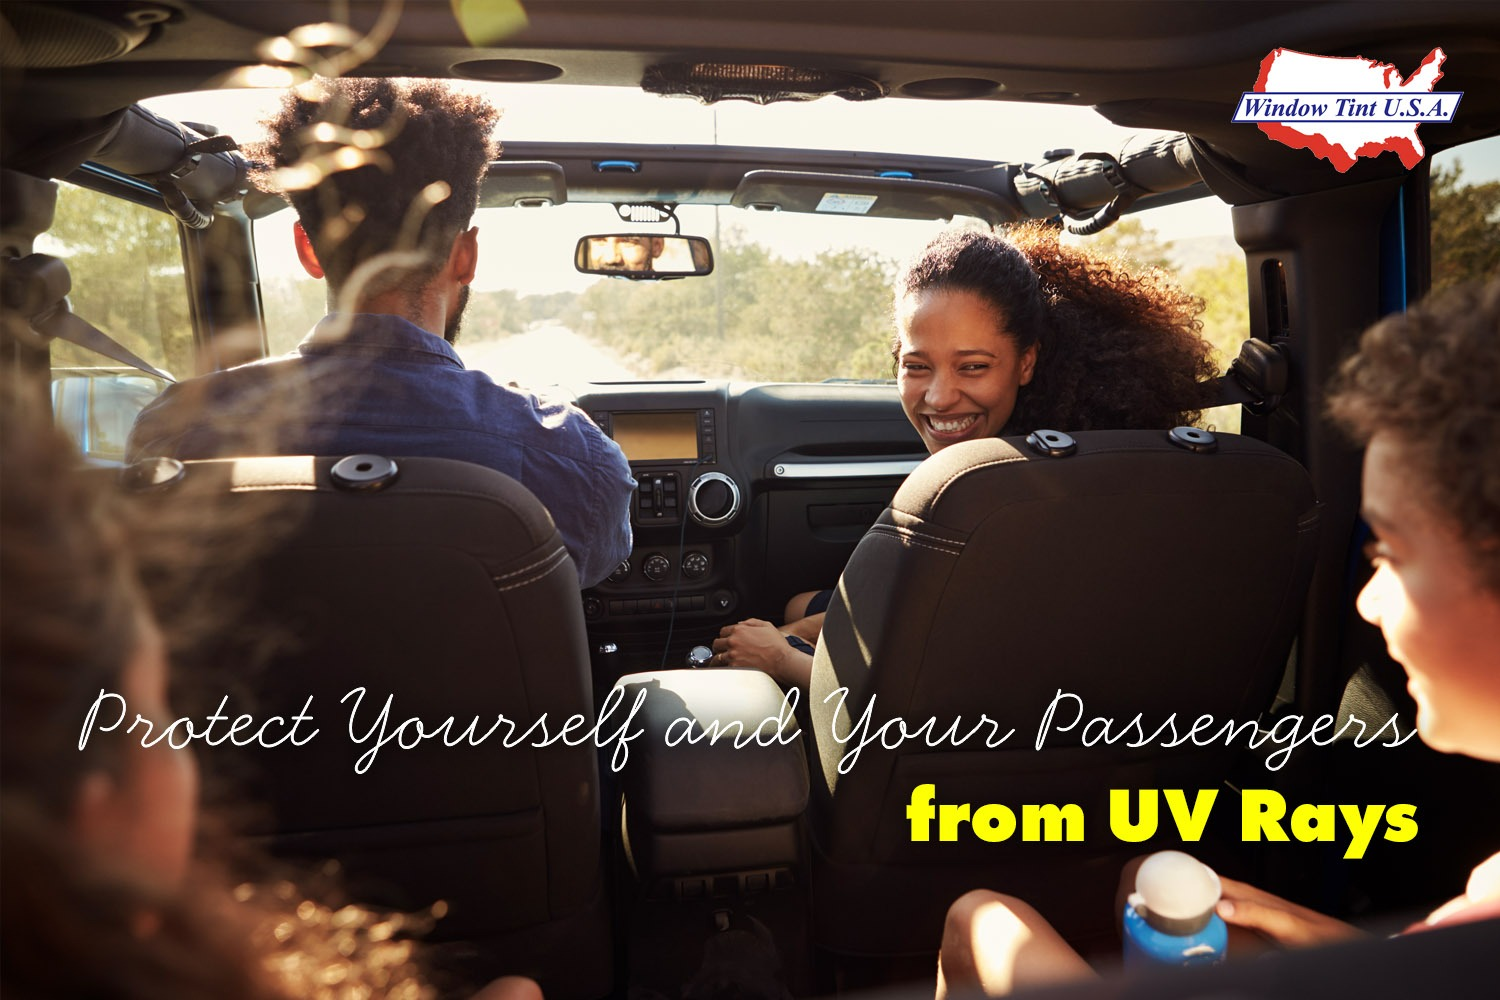 Protect Yourself and Your Passengers from UV Rays